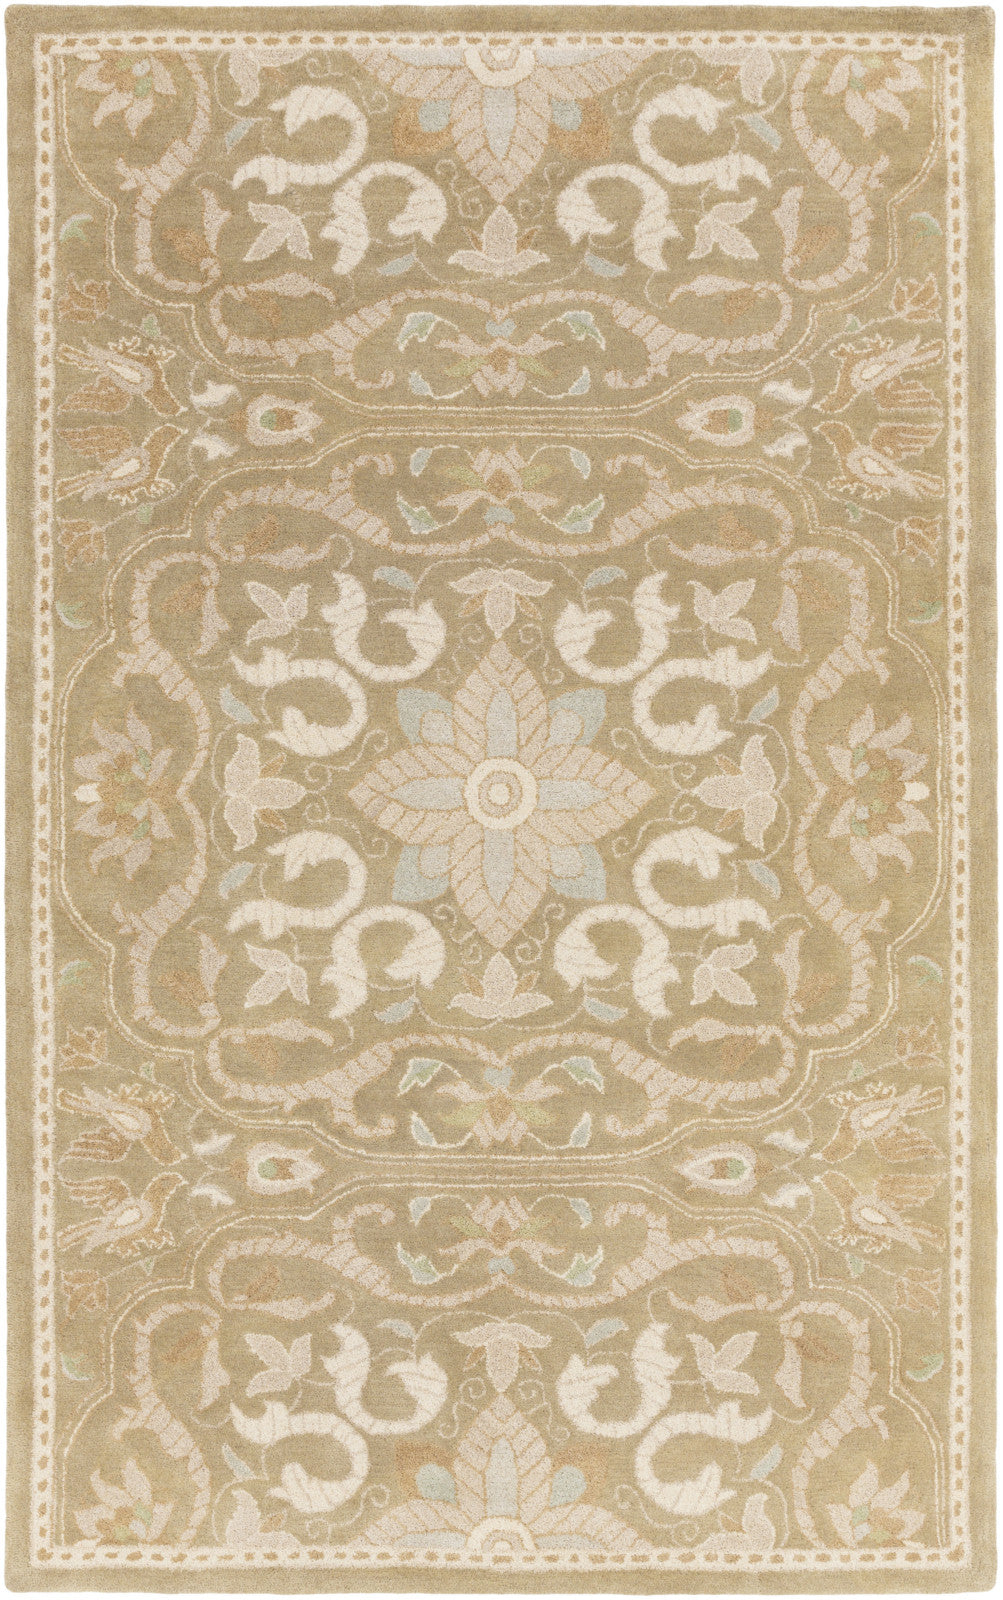 Surya SMI-2164 Brown Hand Tufted Area Rug by Smithsonian